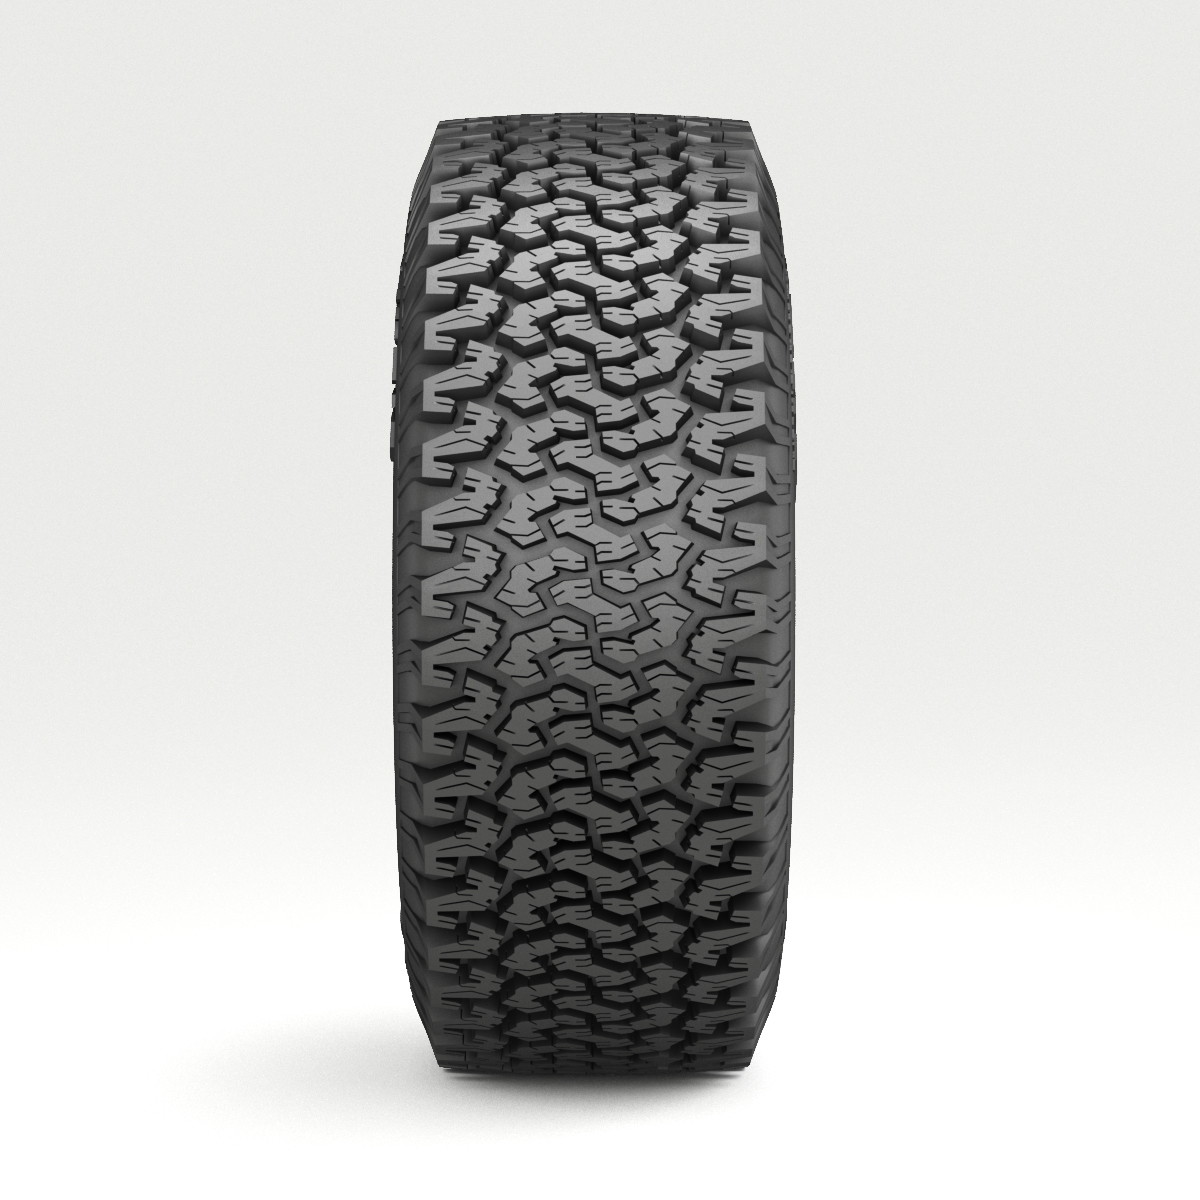 off road wheel and tire 3d model 3ds max fbx obj 224392